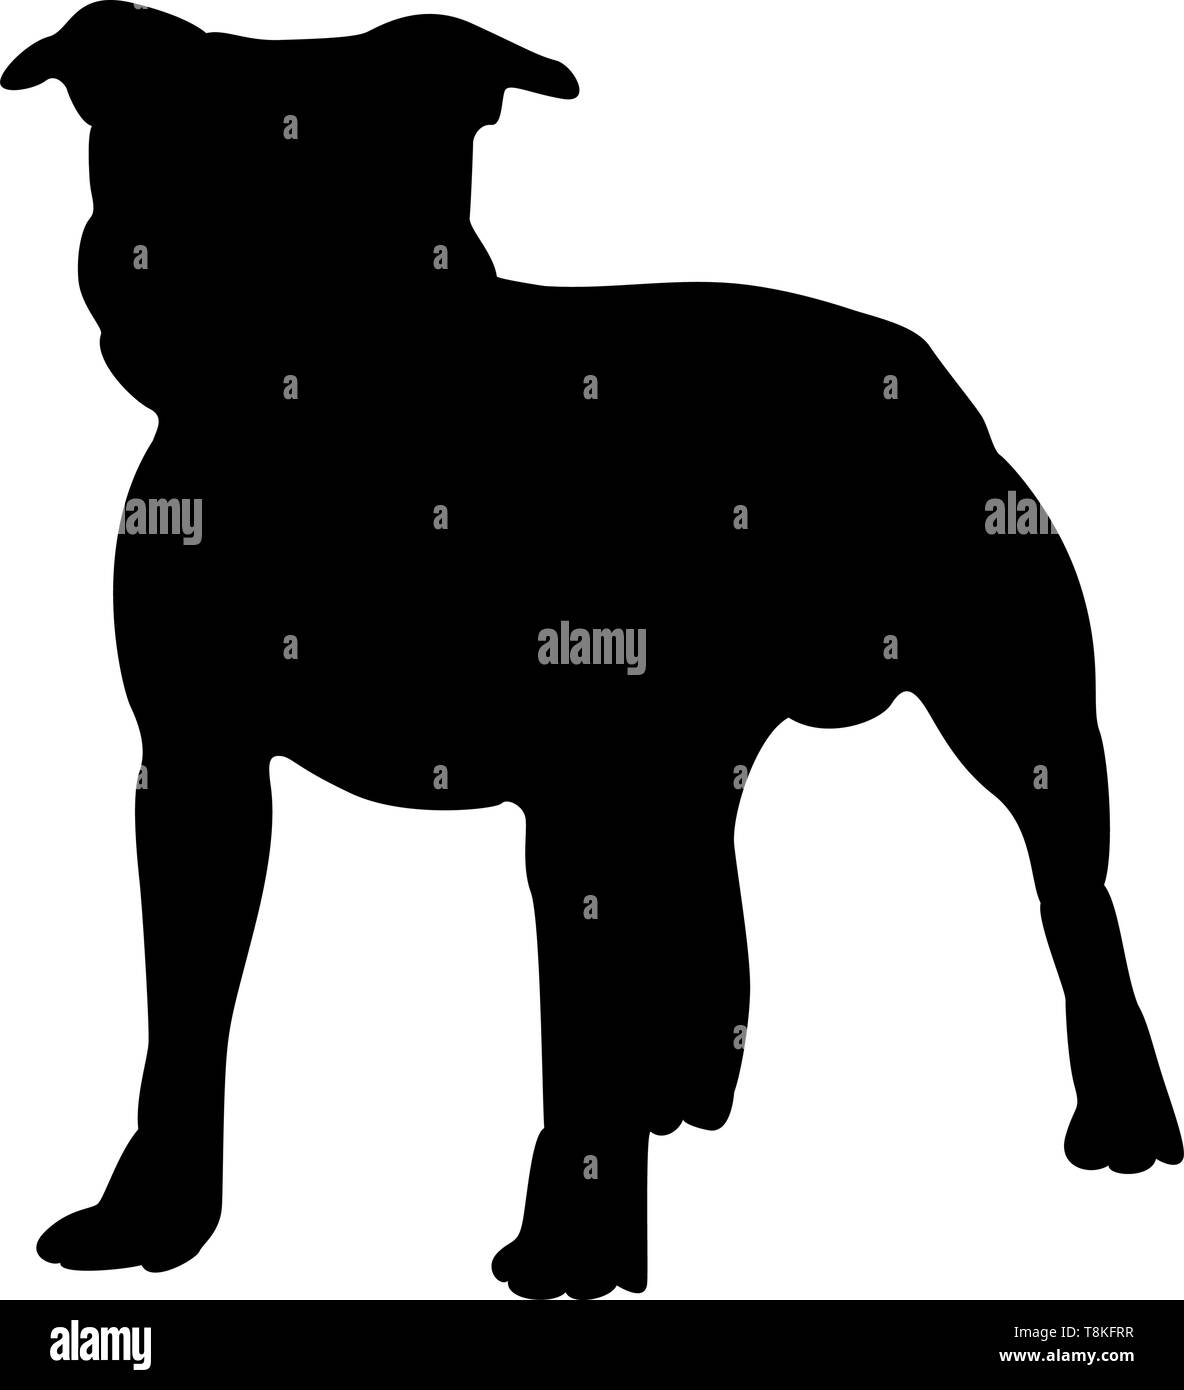 Staffordshire Terrier Dog Silhouette. Smooth Vector Illustration. - Stock Image